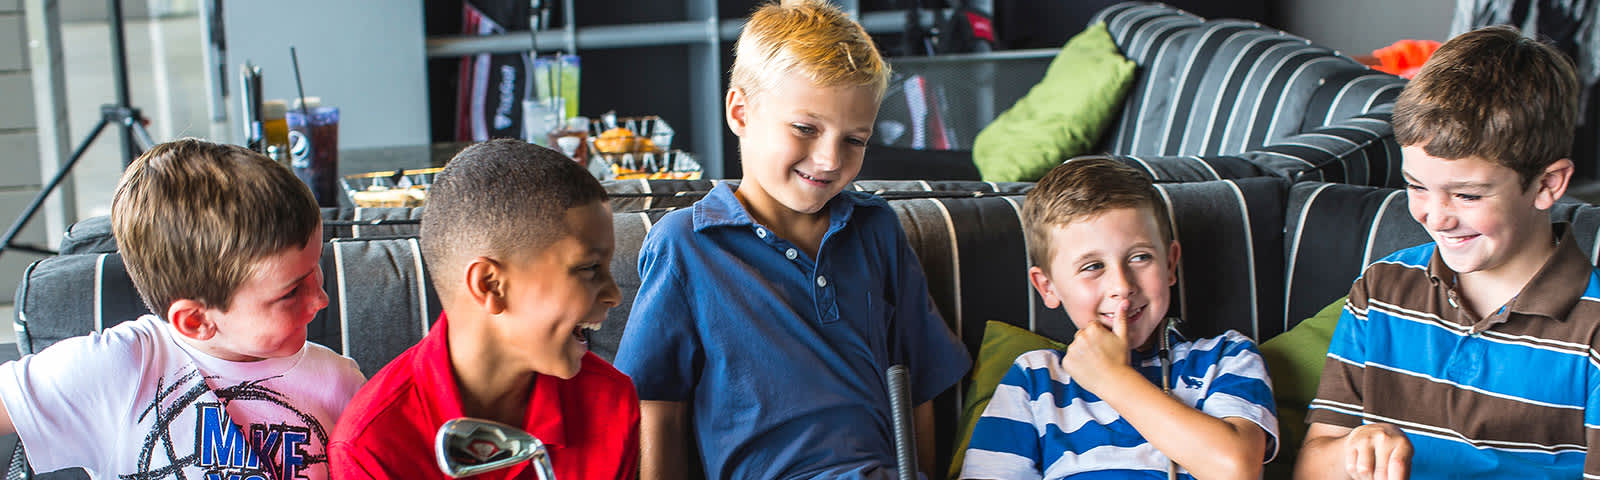 kid friendly things to do in overland park and kc